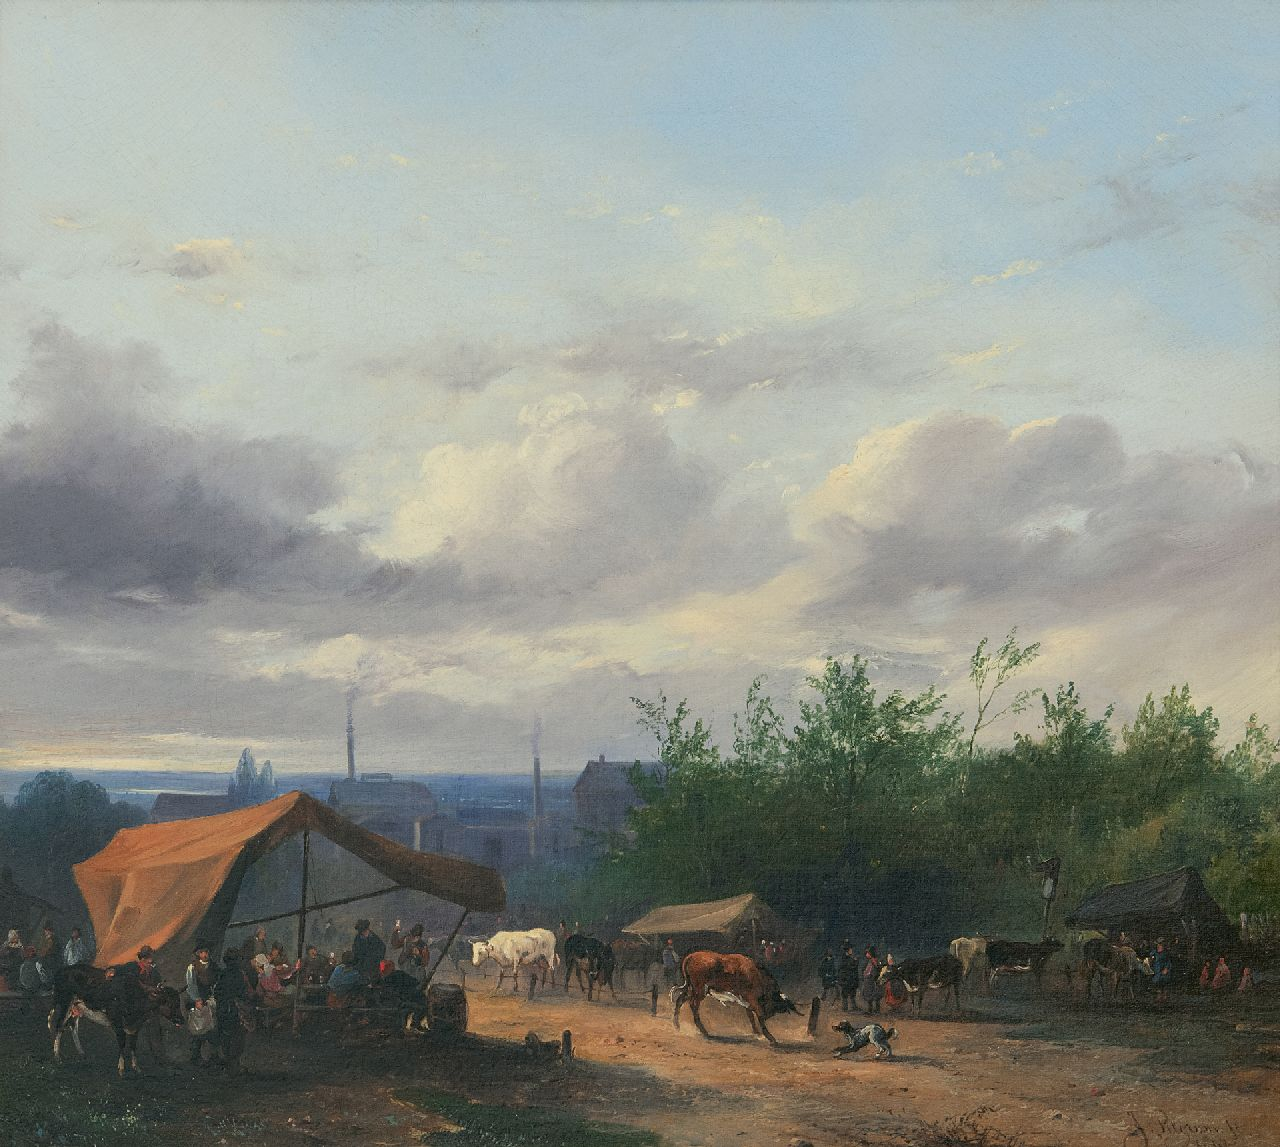 Jacobus Pelgrom | Cattle market, oil on canvas, 37.9 x 42.5 cm, signed l.r. and dated 1847